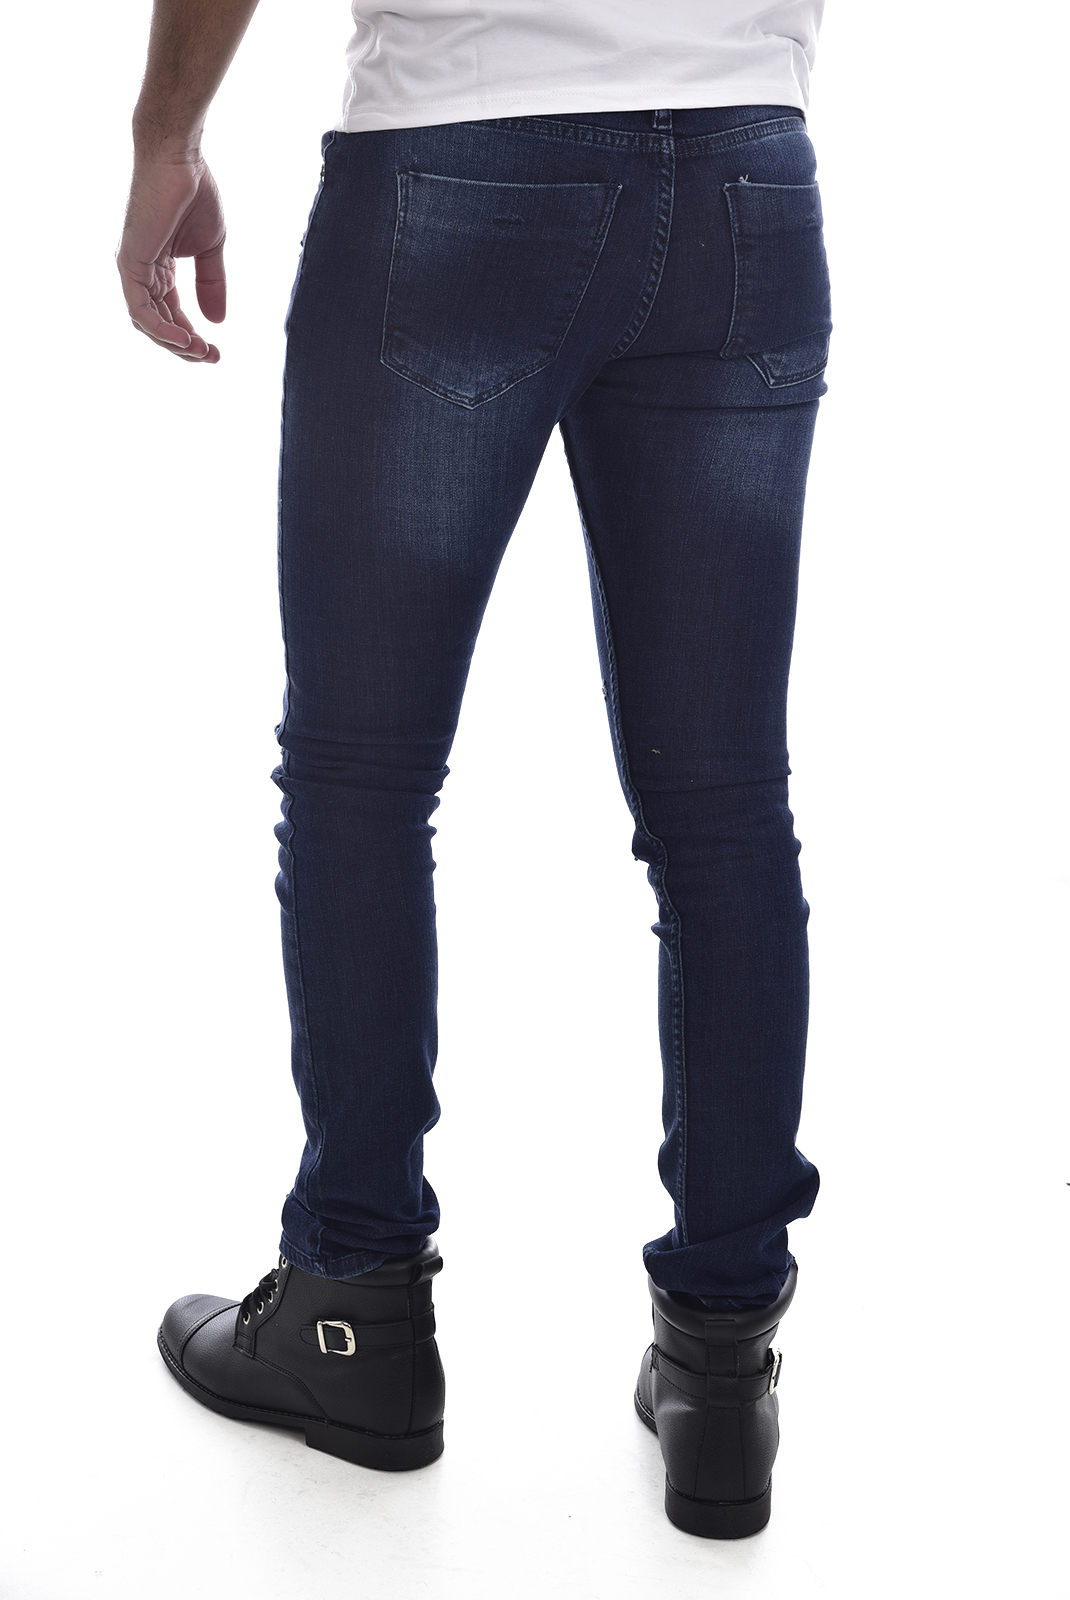 Jeans  Goldenim paris 1058 BLEU